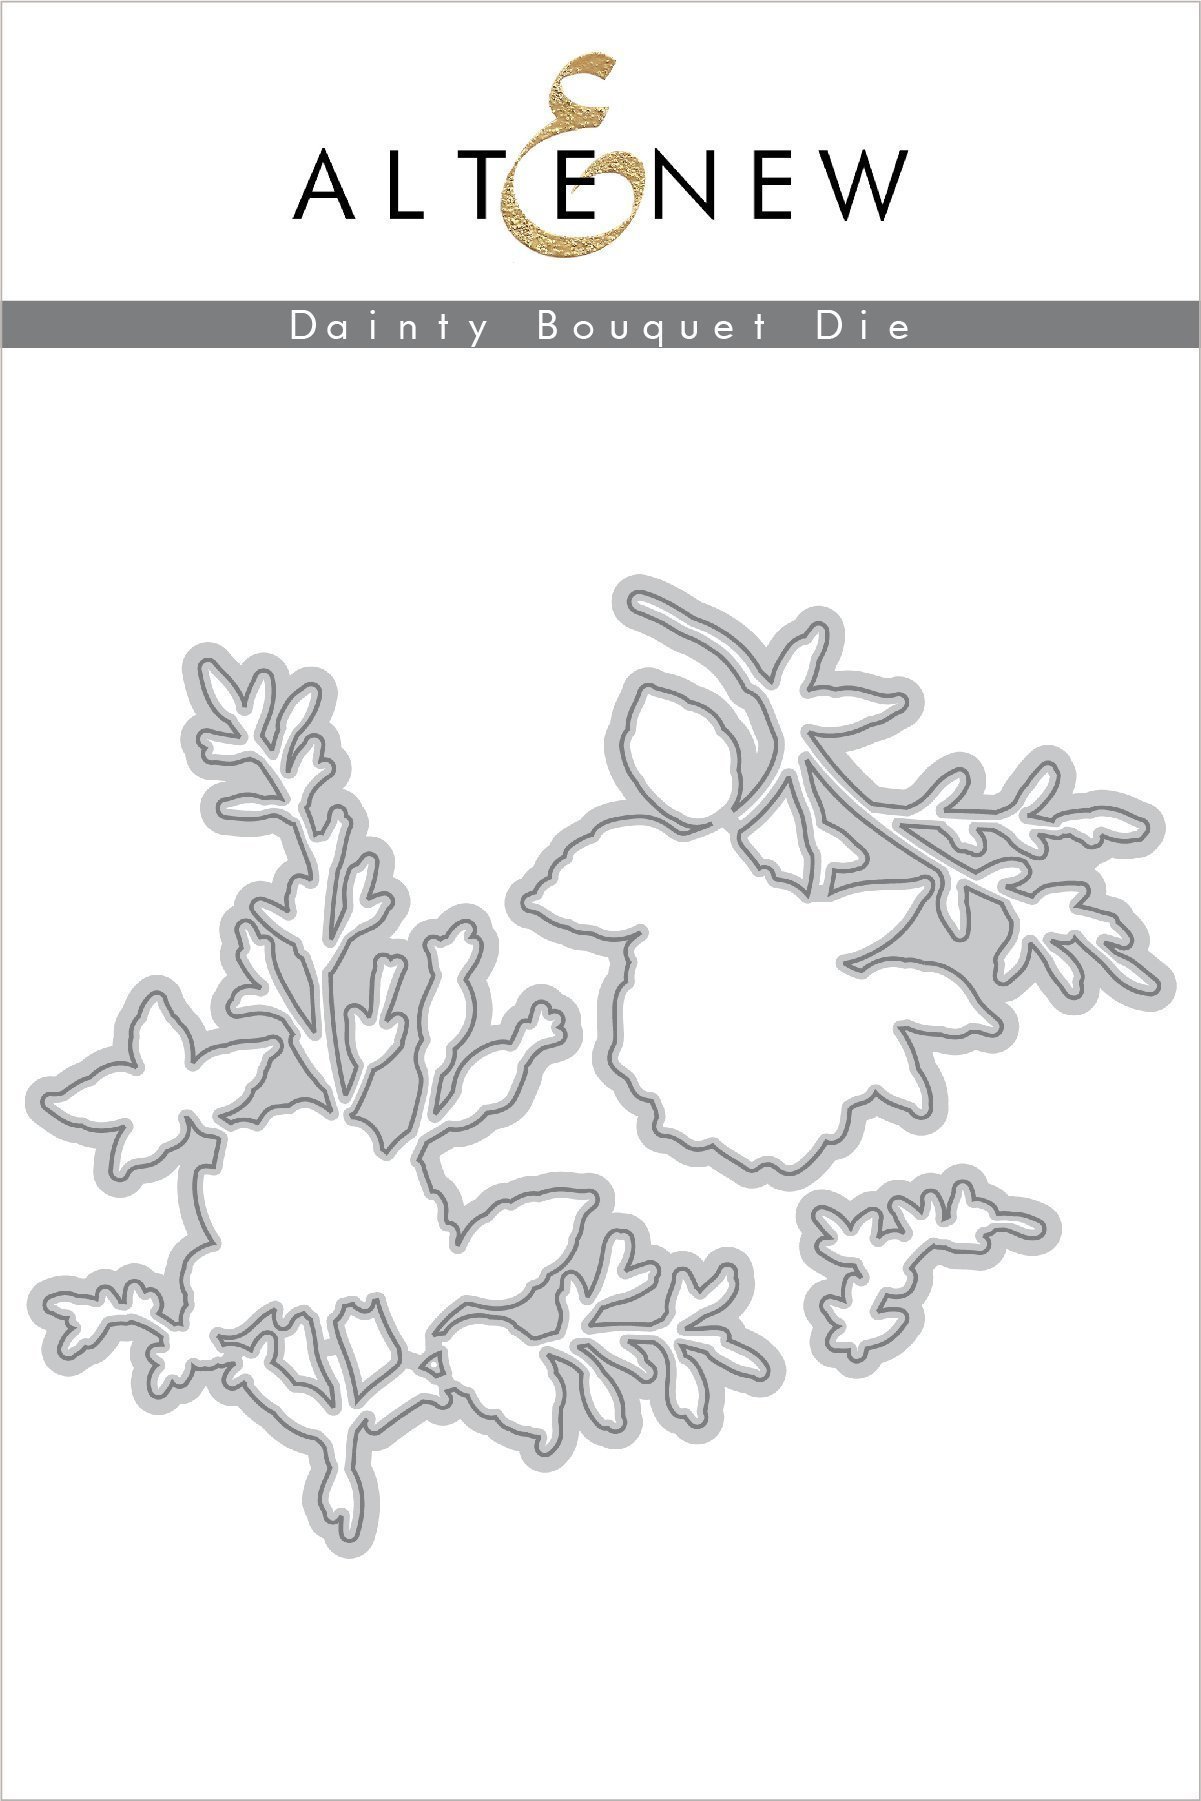 *NEW* - Altenew - Dainty Bouquet Die Set